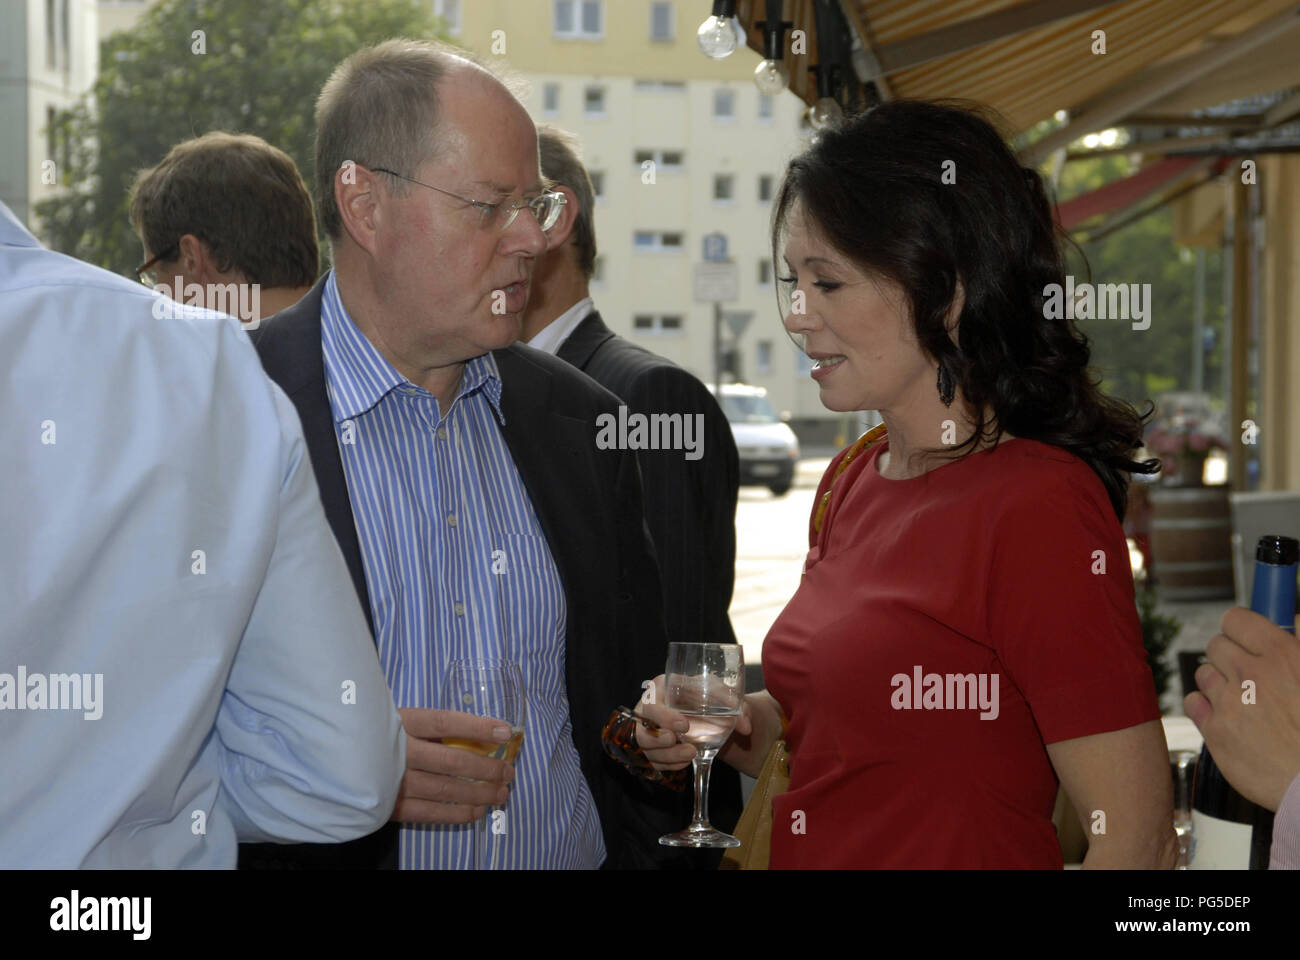 Berlin, DEU, 07.07.2011: Celebration for Peer Steinbrueck (left), politician and chancellor candidate (SPD) and bestseller-author with Iris Berben (red dress), actor (Germany) - Stock Image